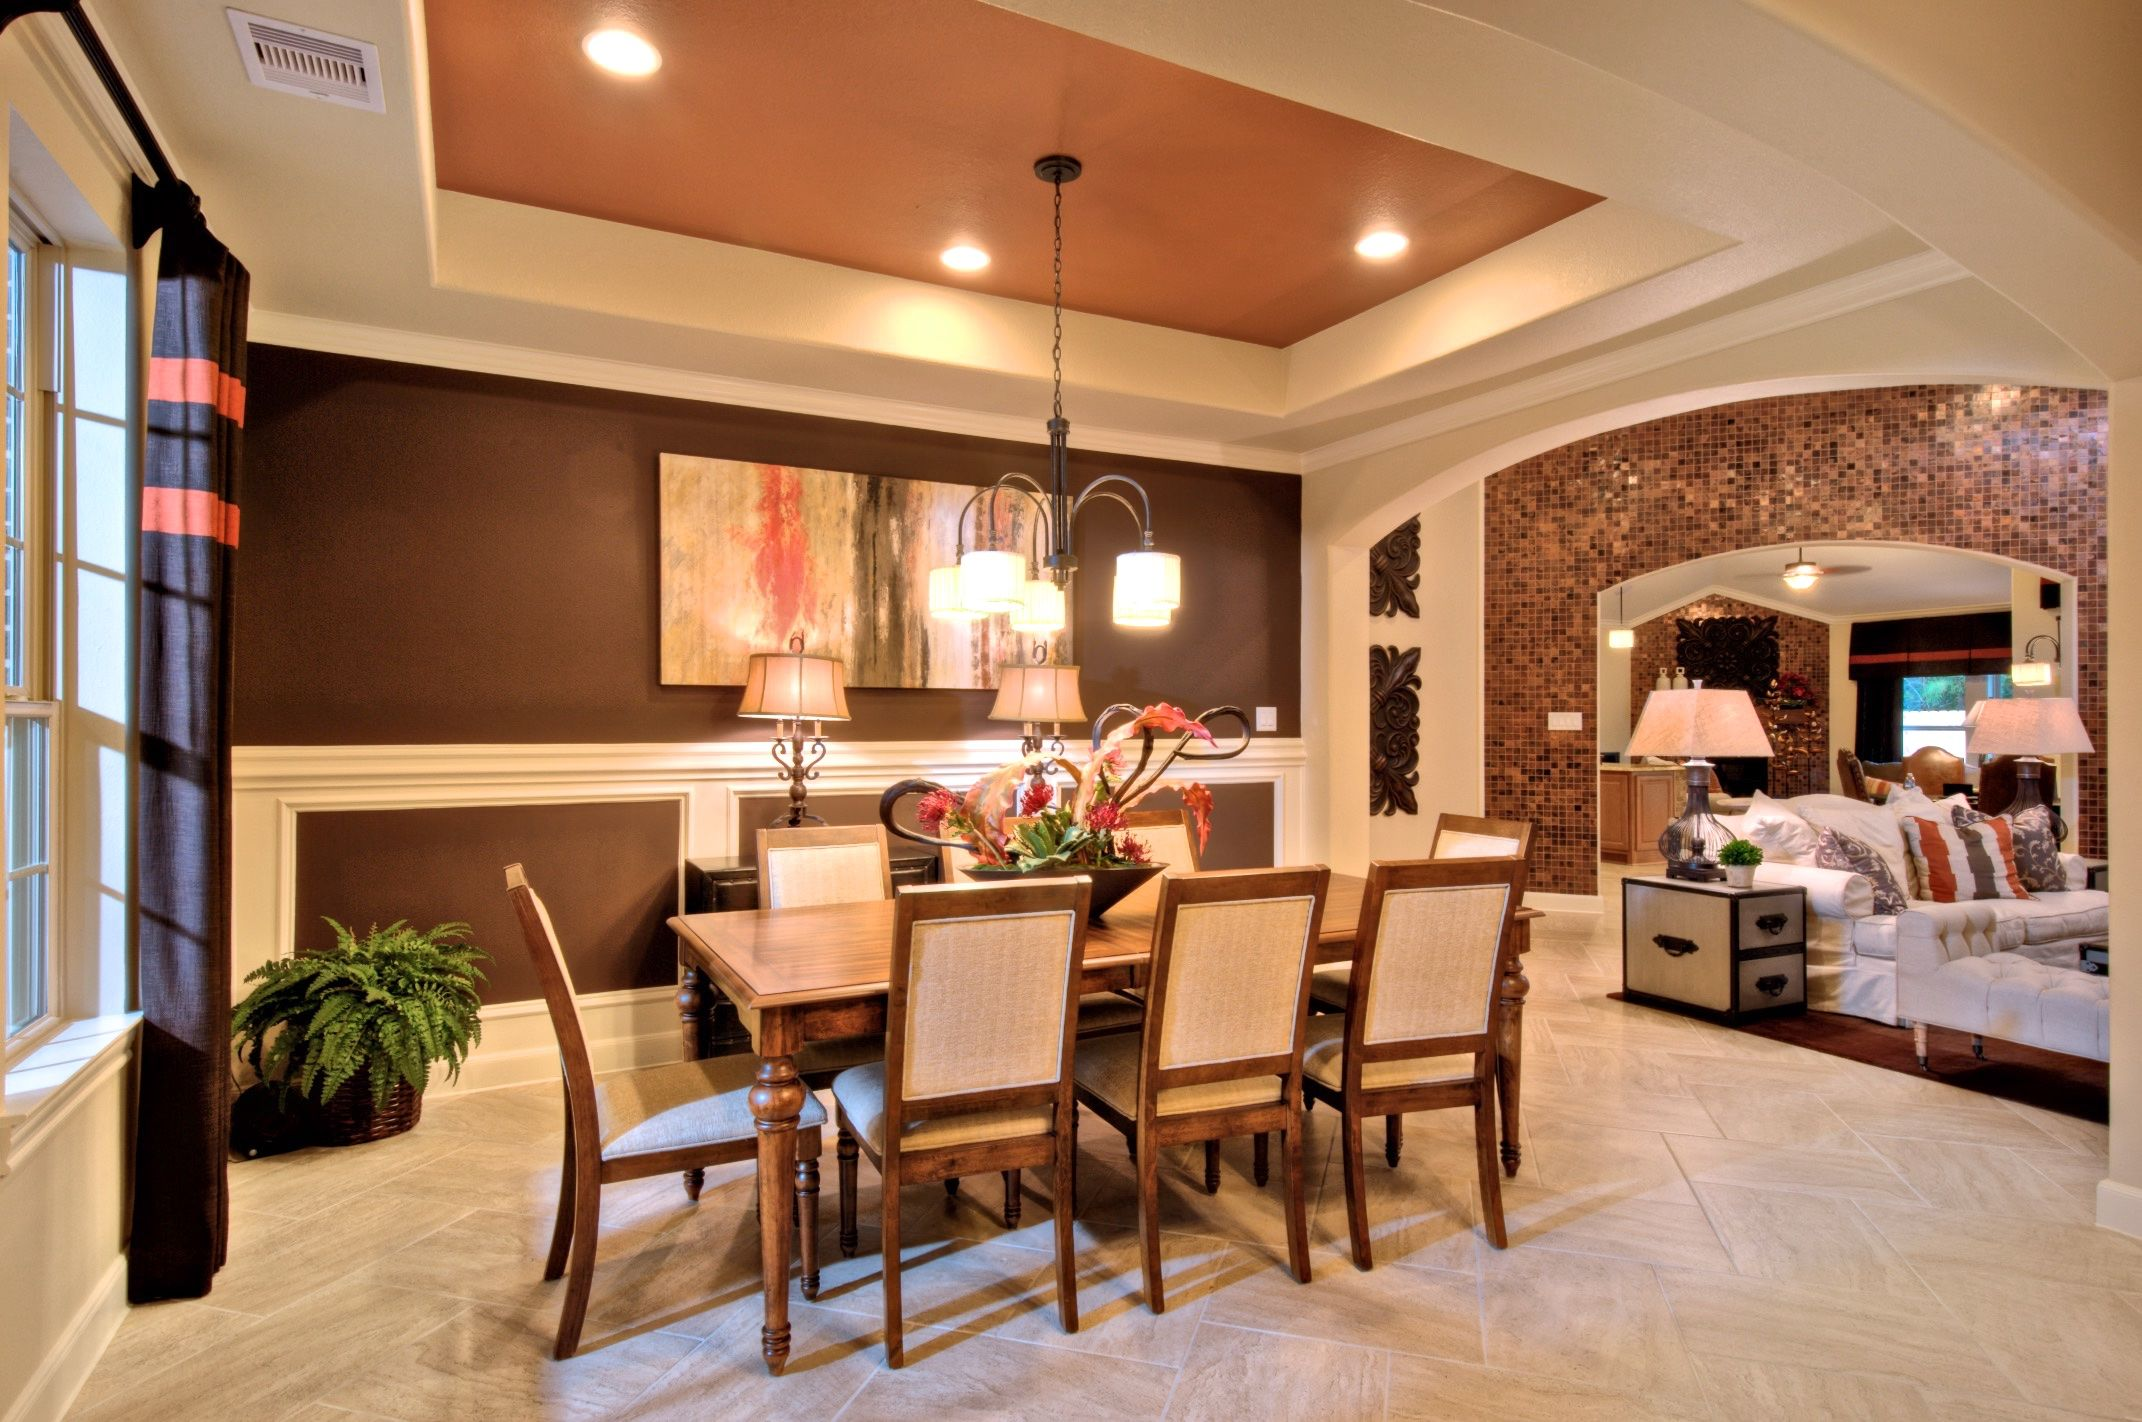 Discover effortless elegance in your next home call 281